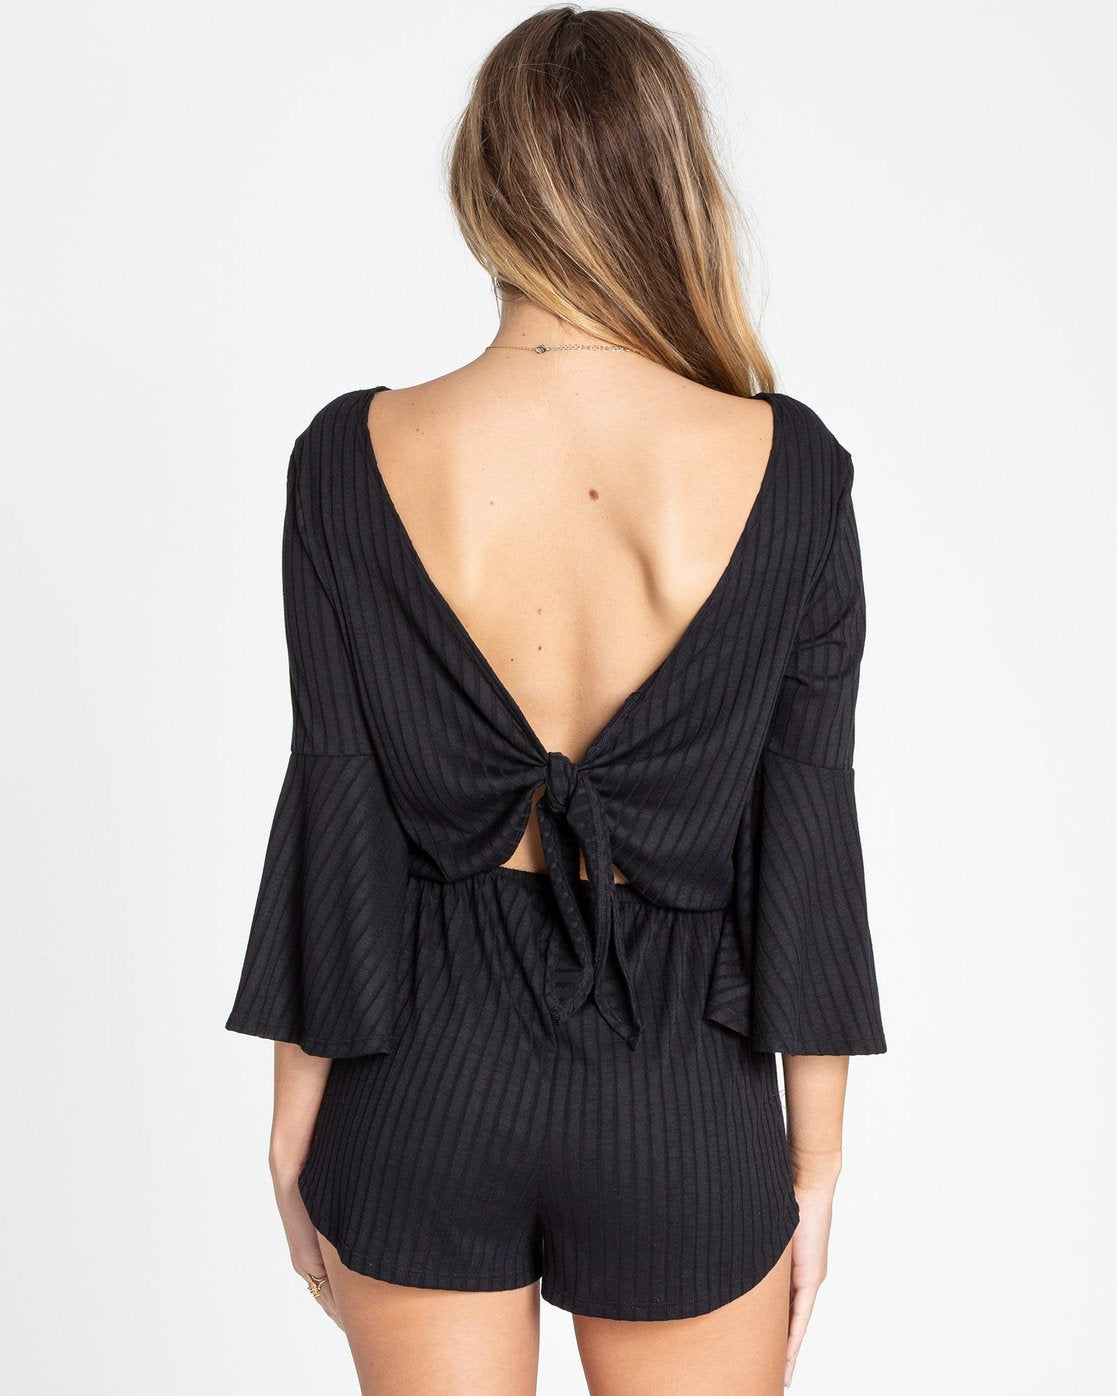 BILLABONG W'S JUMPERS DAY LA SOL ROMPER